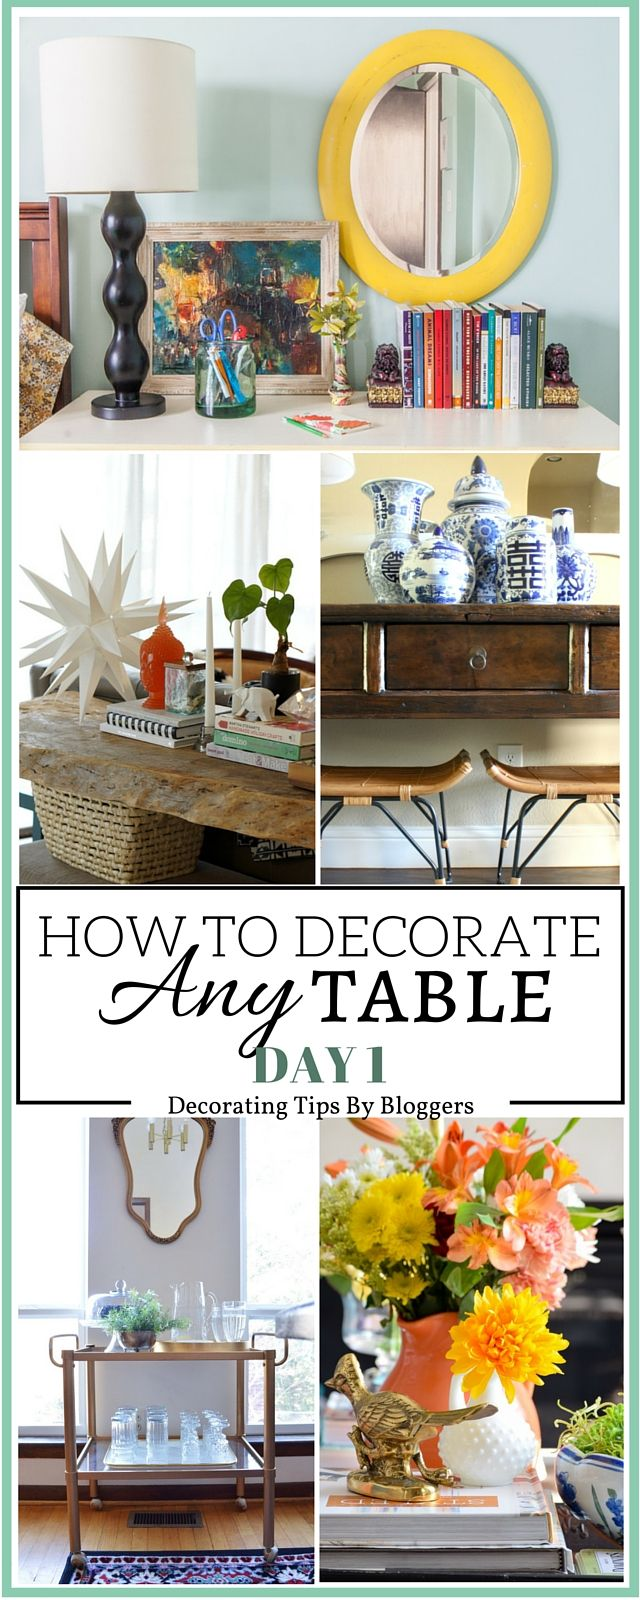 So many great tips on table styling! Love all the different looks and ideas.